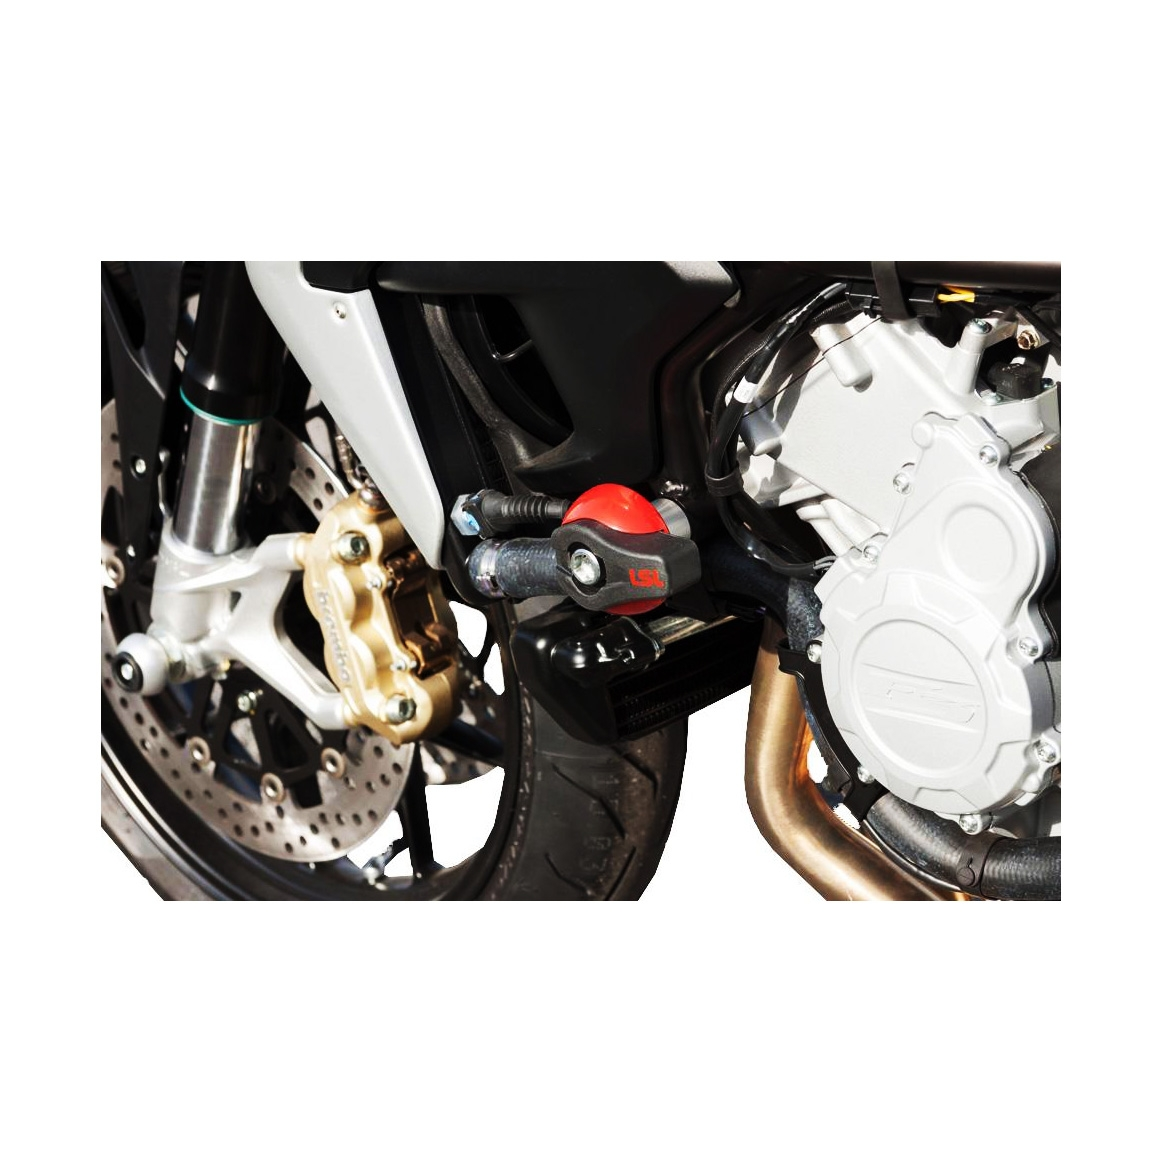 Kit fixation tampon de protection LSL MV Agusta F4 Brutale 750 S 03-05